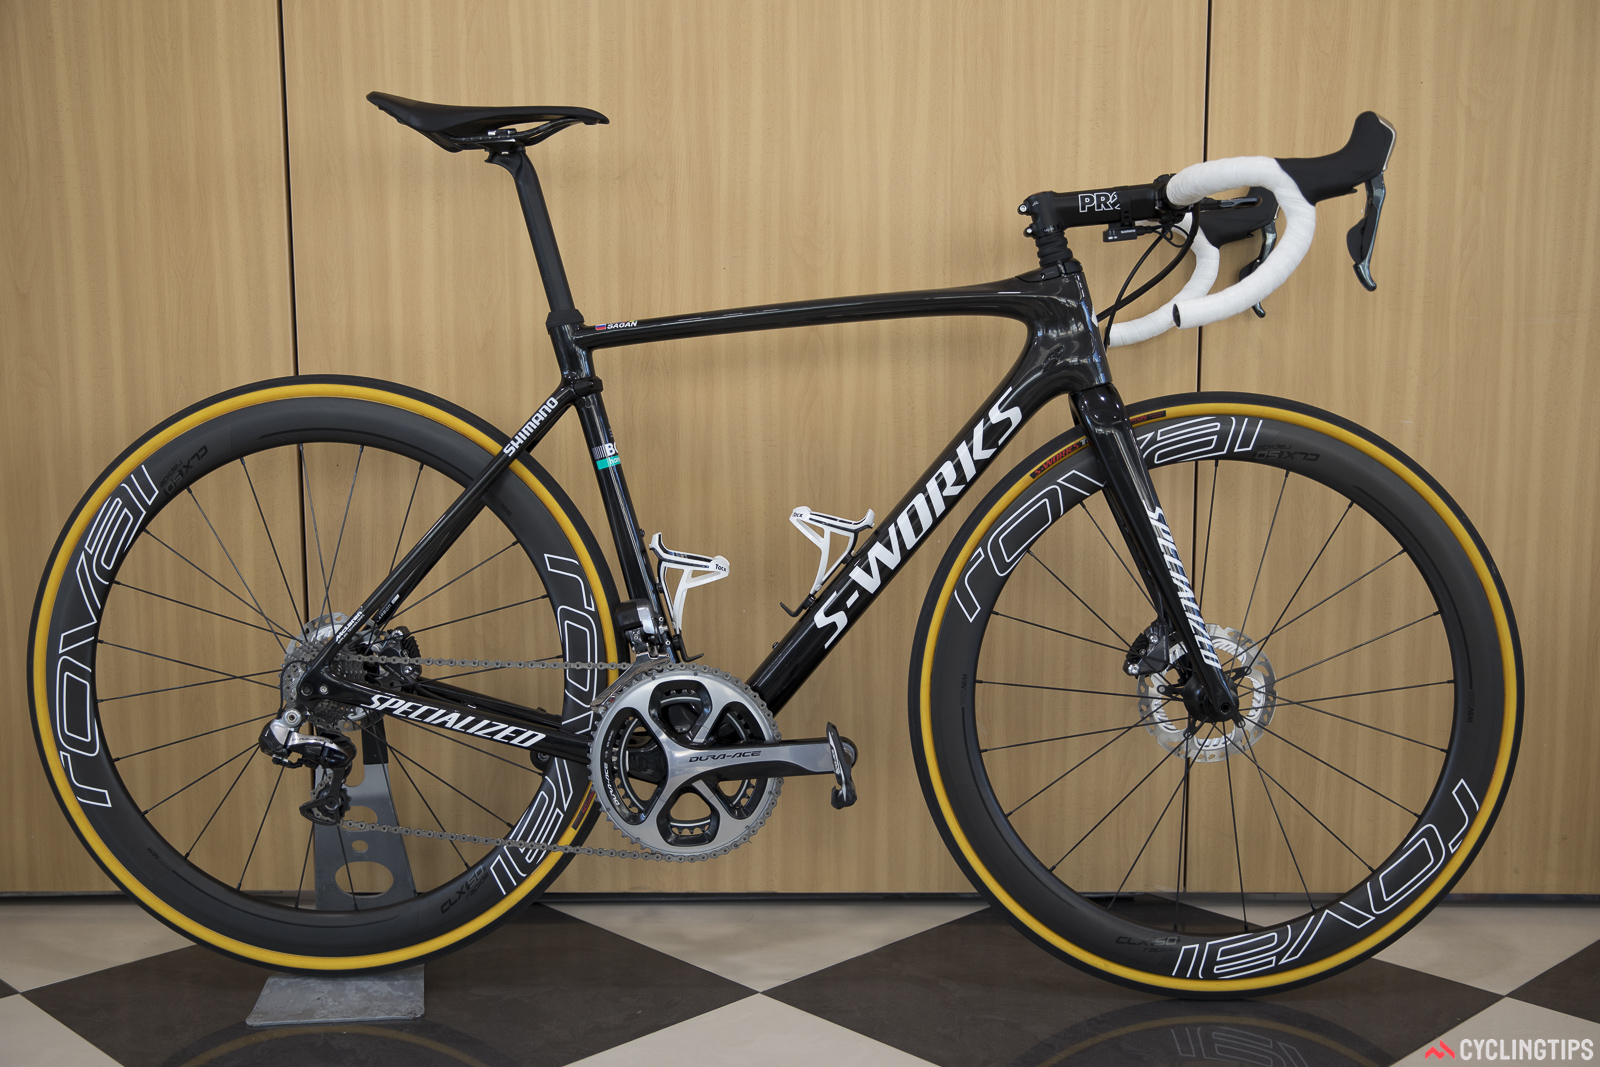 Peter Sagan's Specialized S-Works Roubaix will certainly be updated with Shimano's latest Dura-Ace Di2 hydraulic group before the season begins.